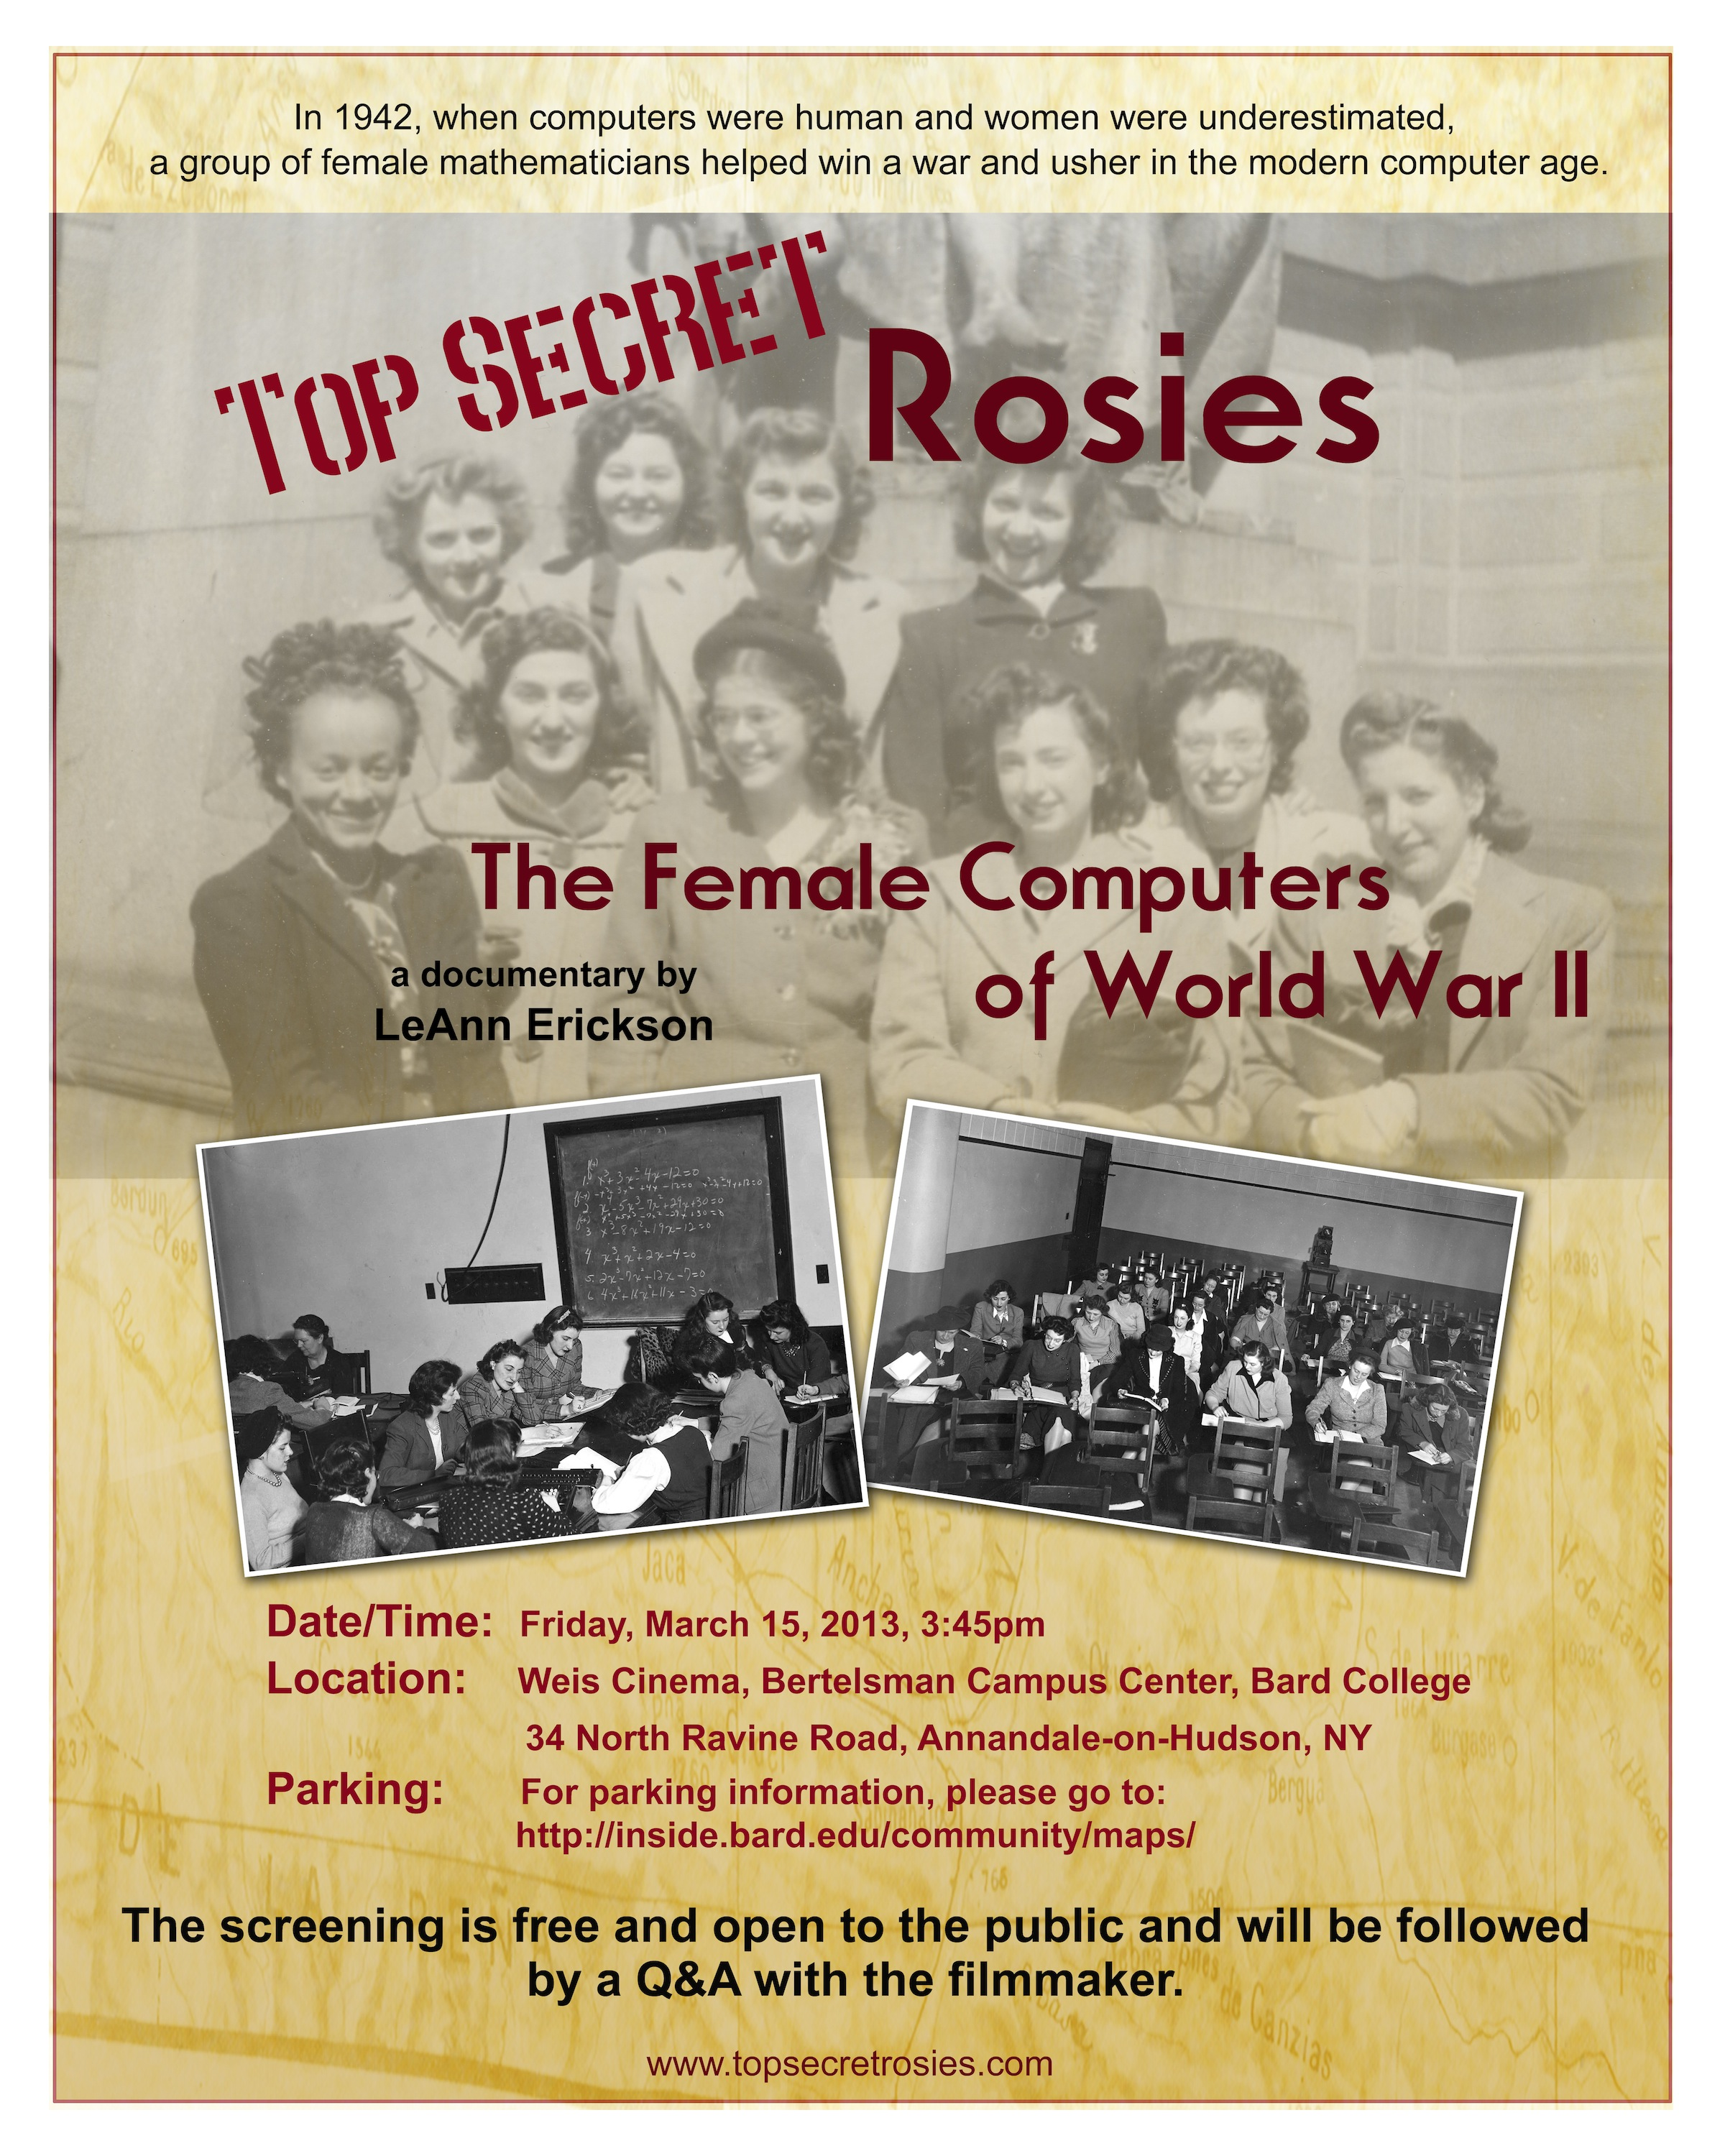 [Top Secret Rosies]